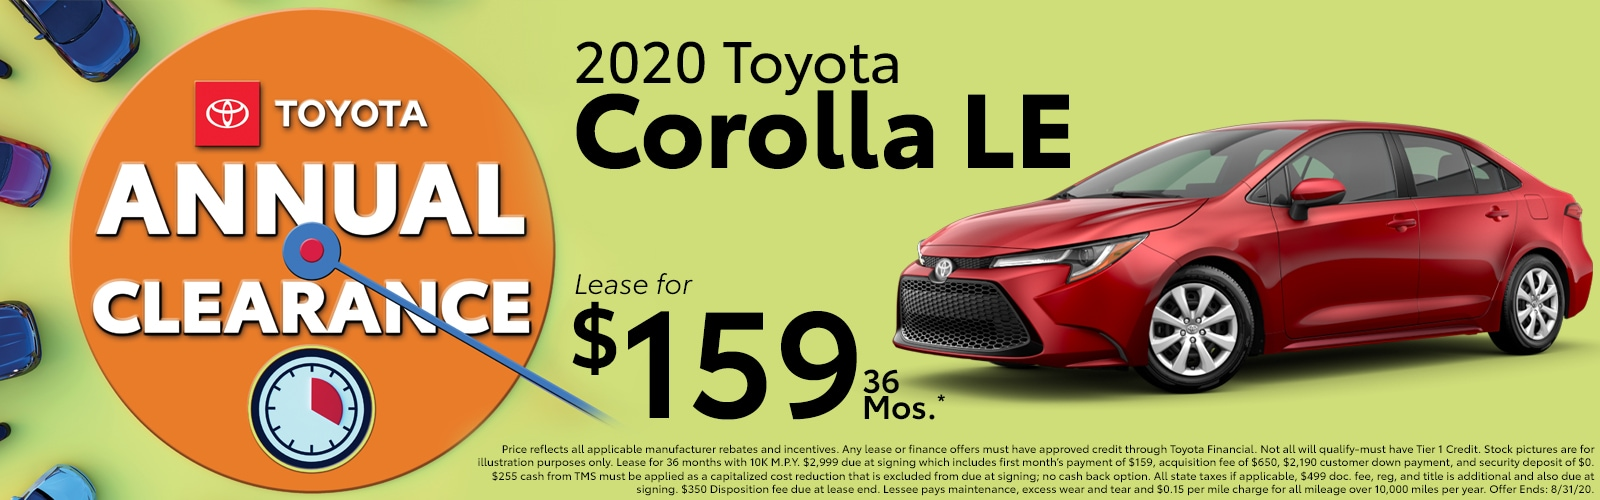 2020 Toyota Corolla LE at McGee Toyota of Epping